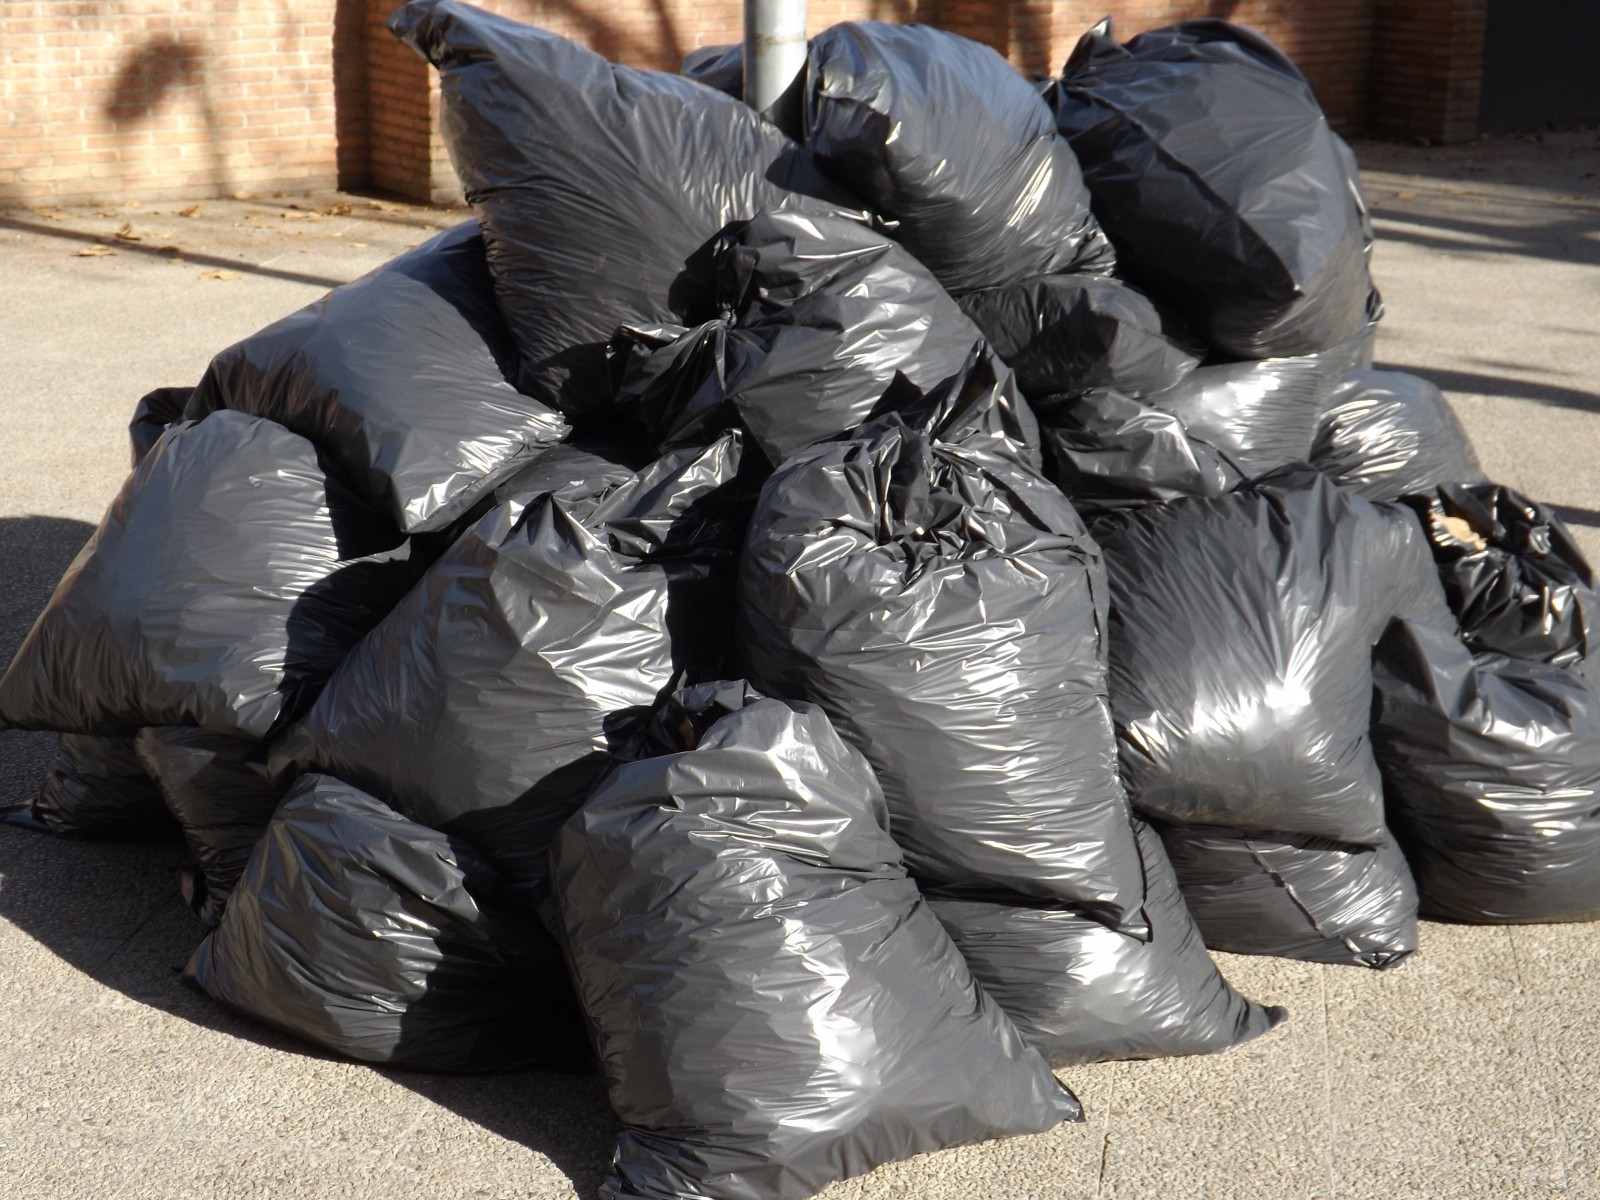 garbage-bags-waste-plastic-pollution-environment